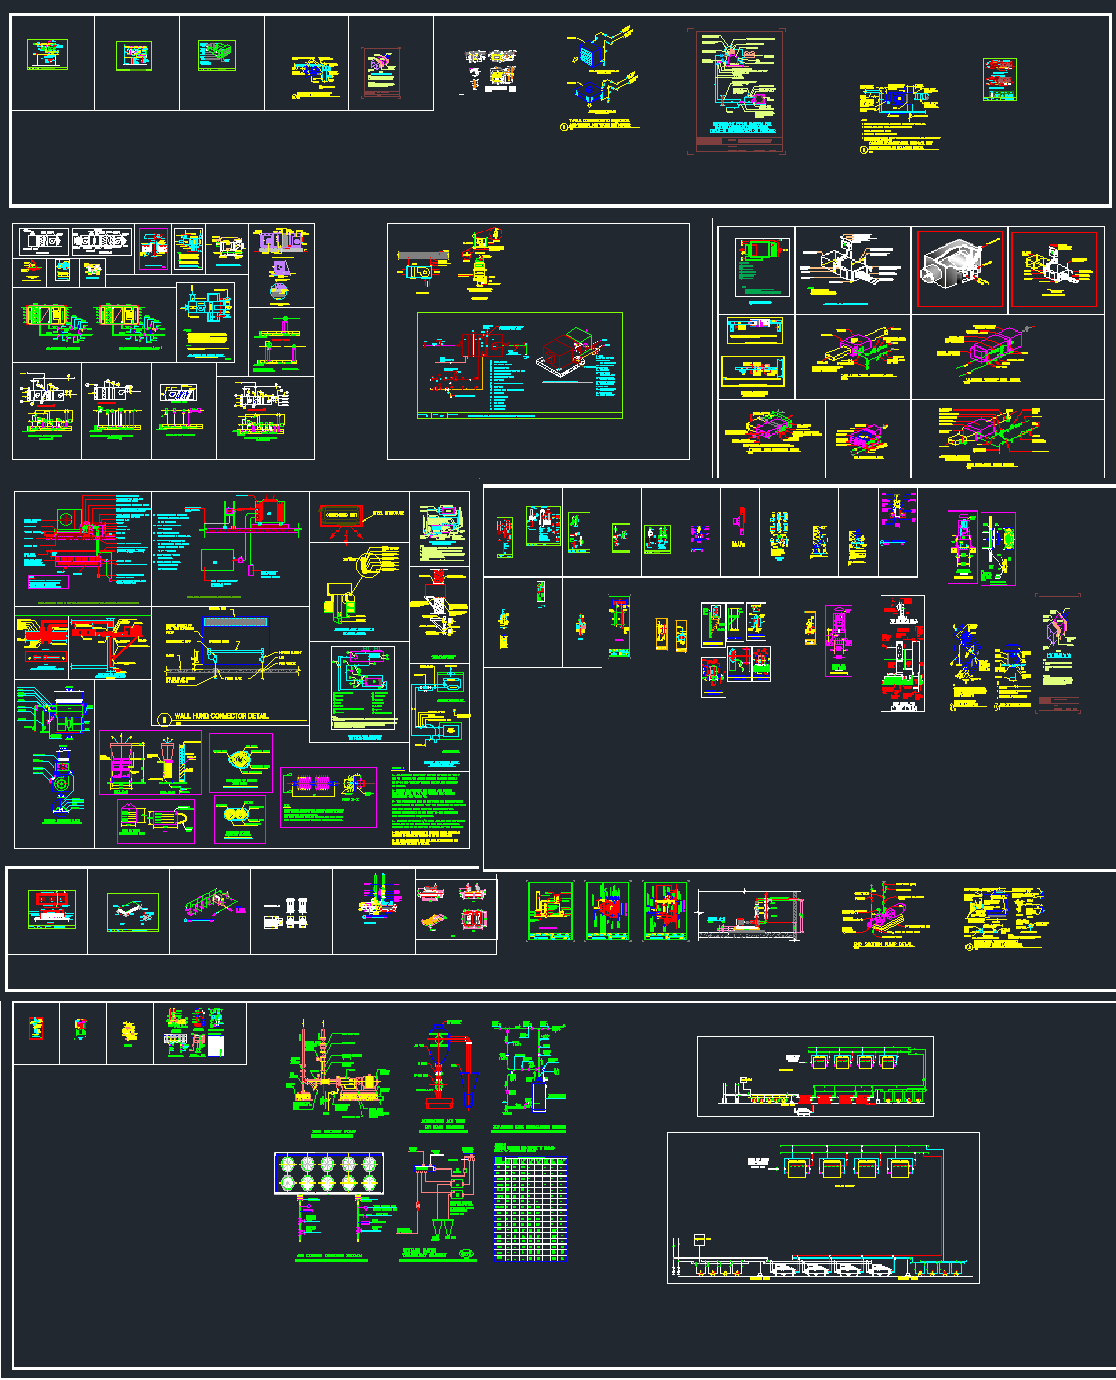 download autocad details for hvac equipment free dwg [ 1116 x 1380 Pixel ]